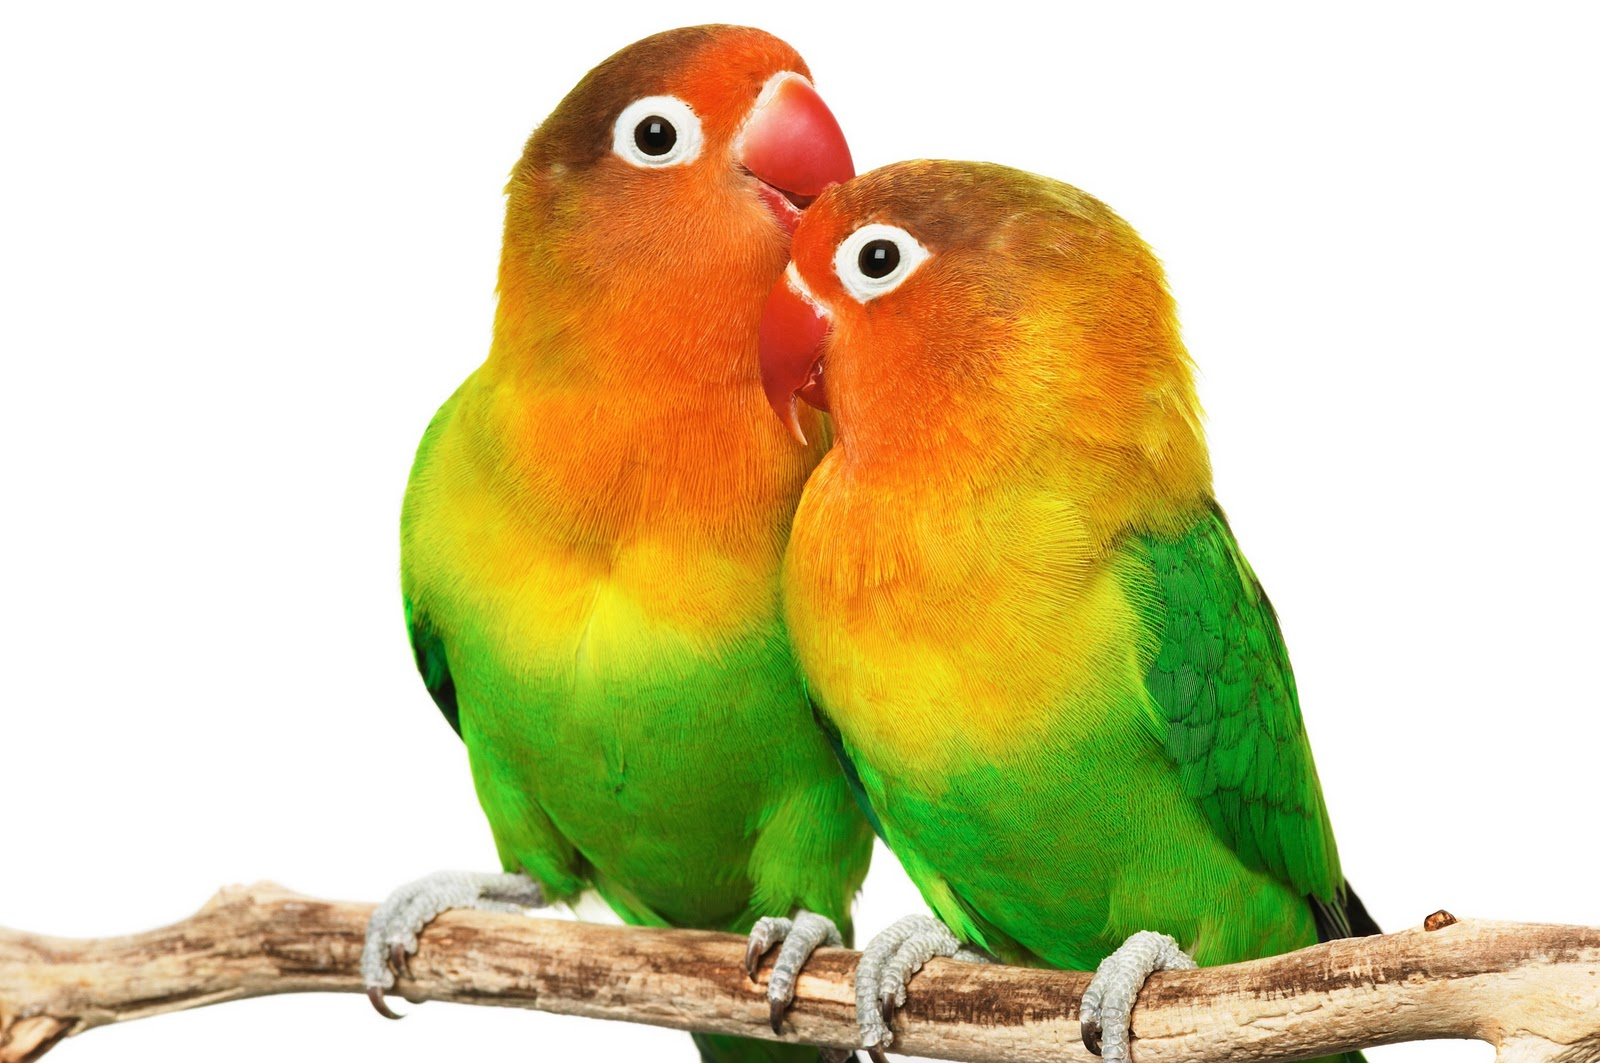 Pair Love Bird Wallpaper